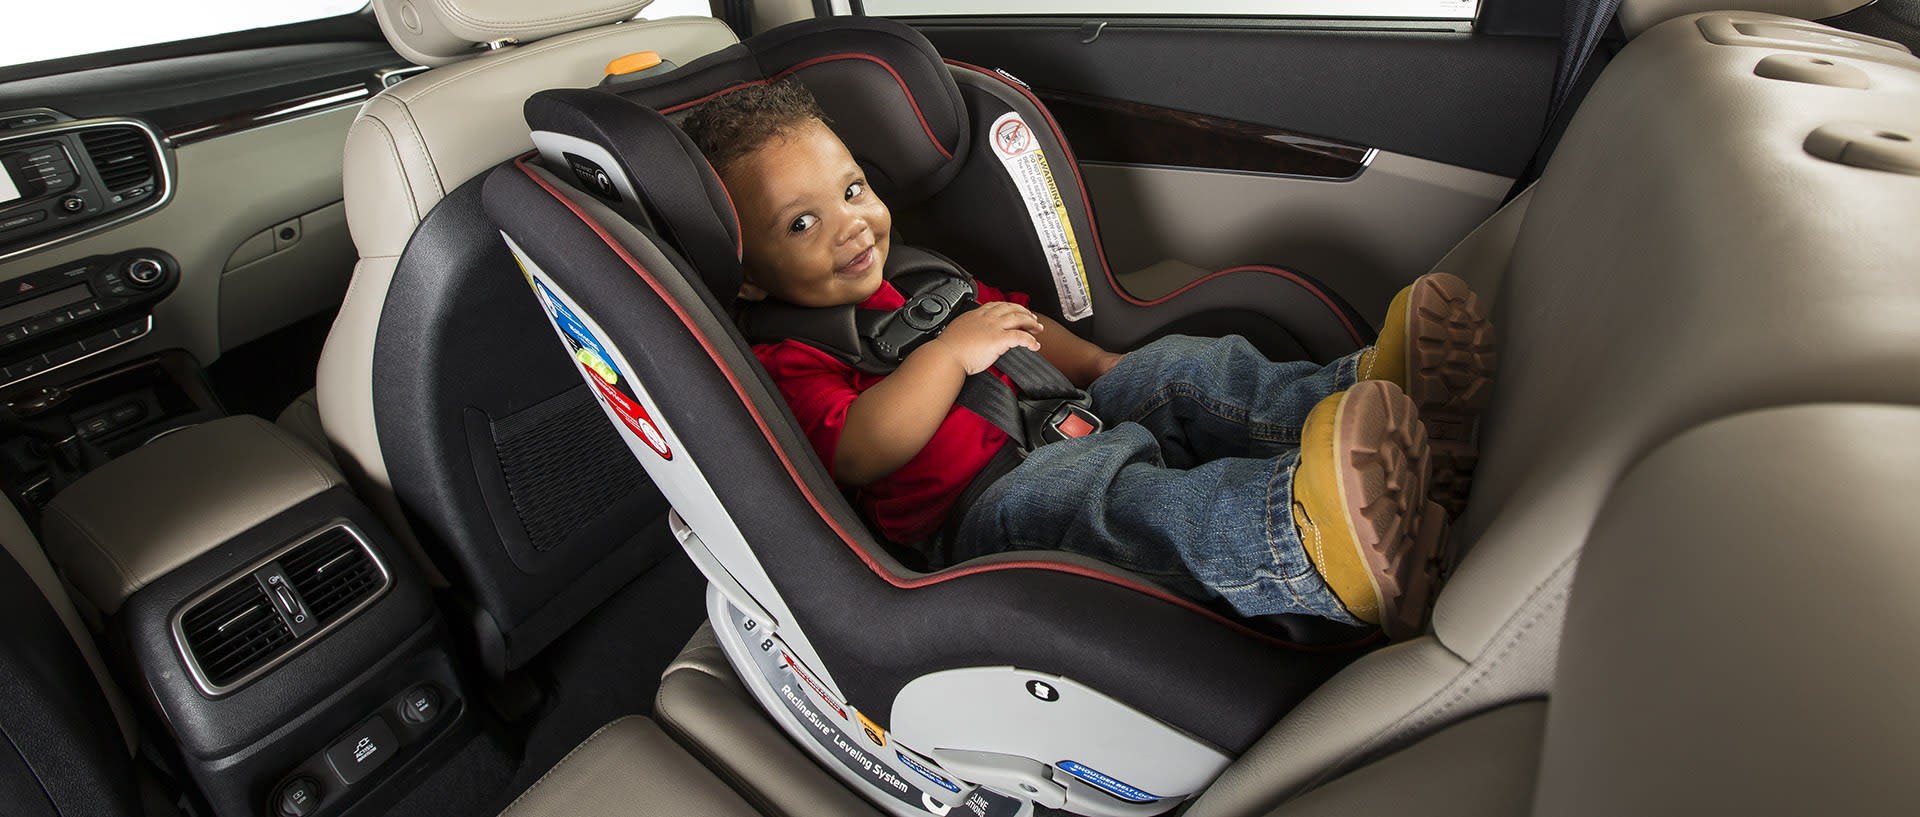 5 Top Rated Convertible Car Seats